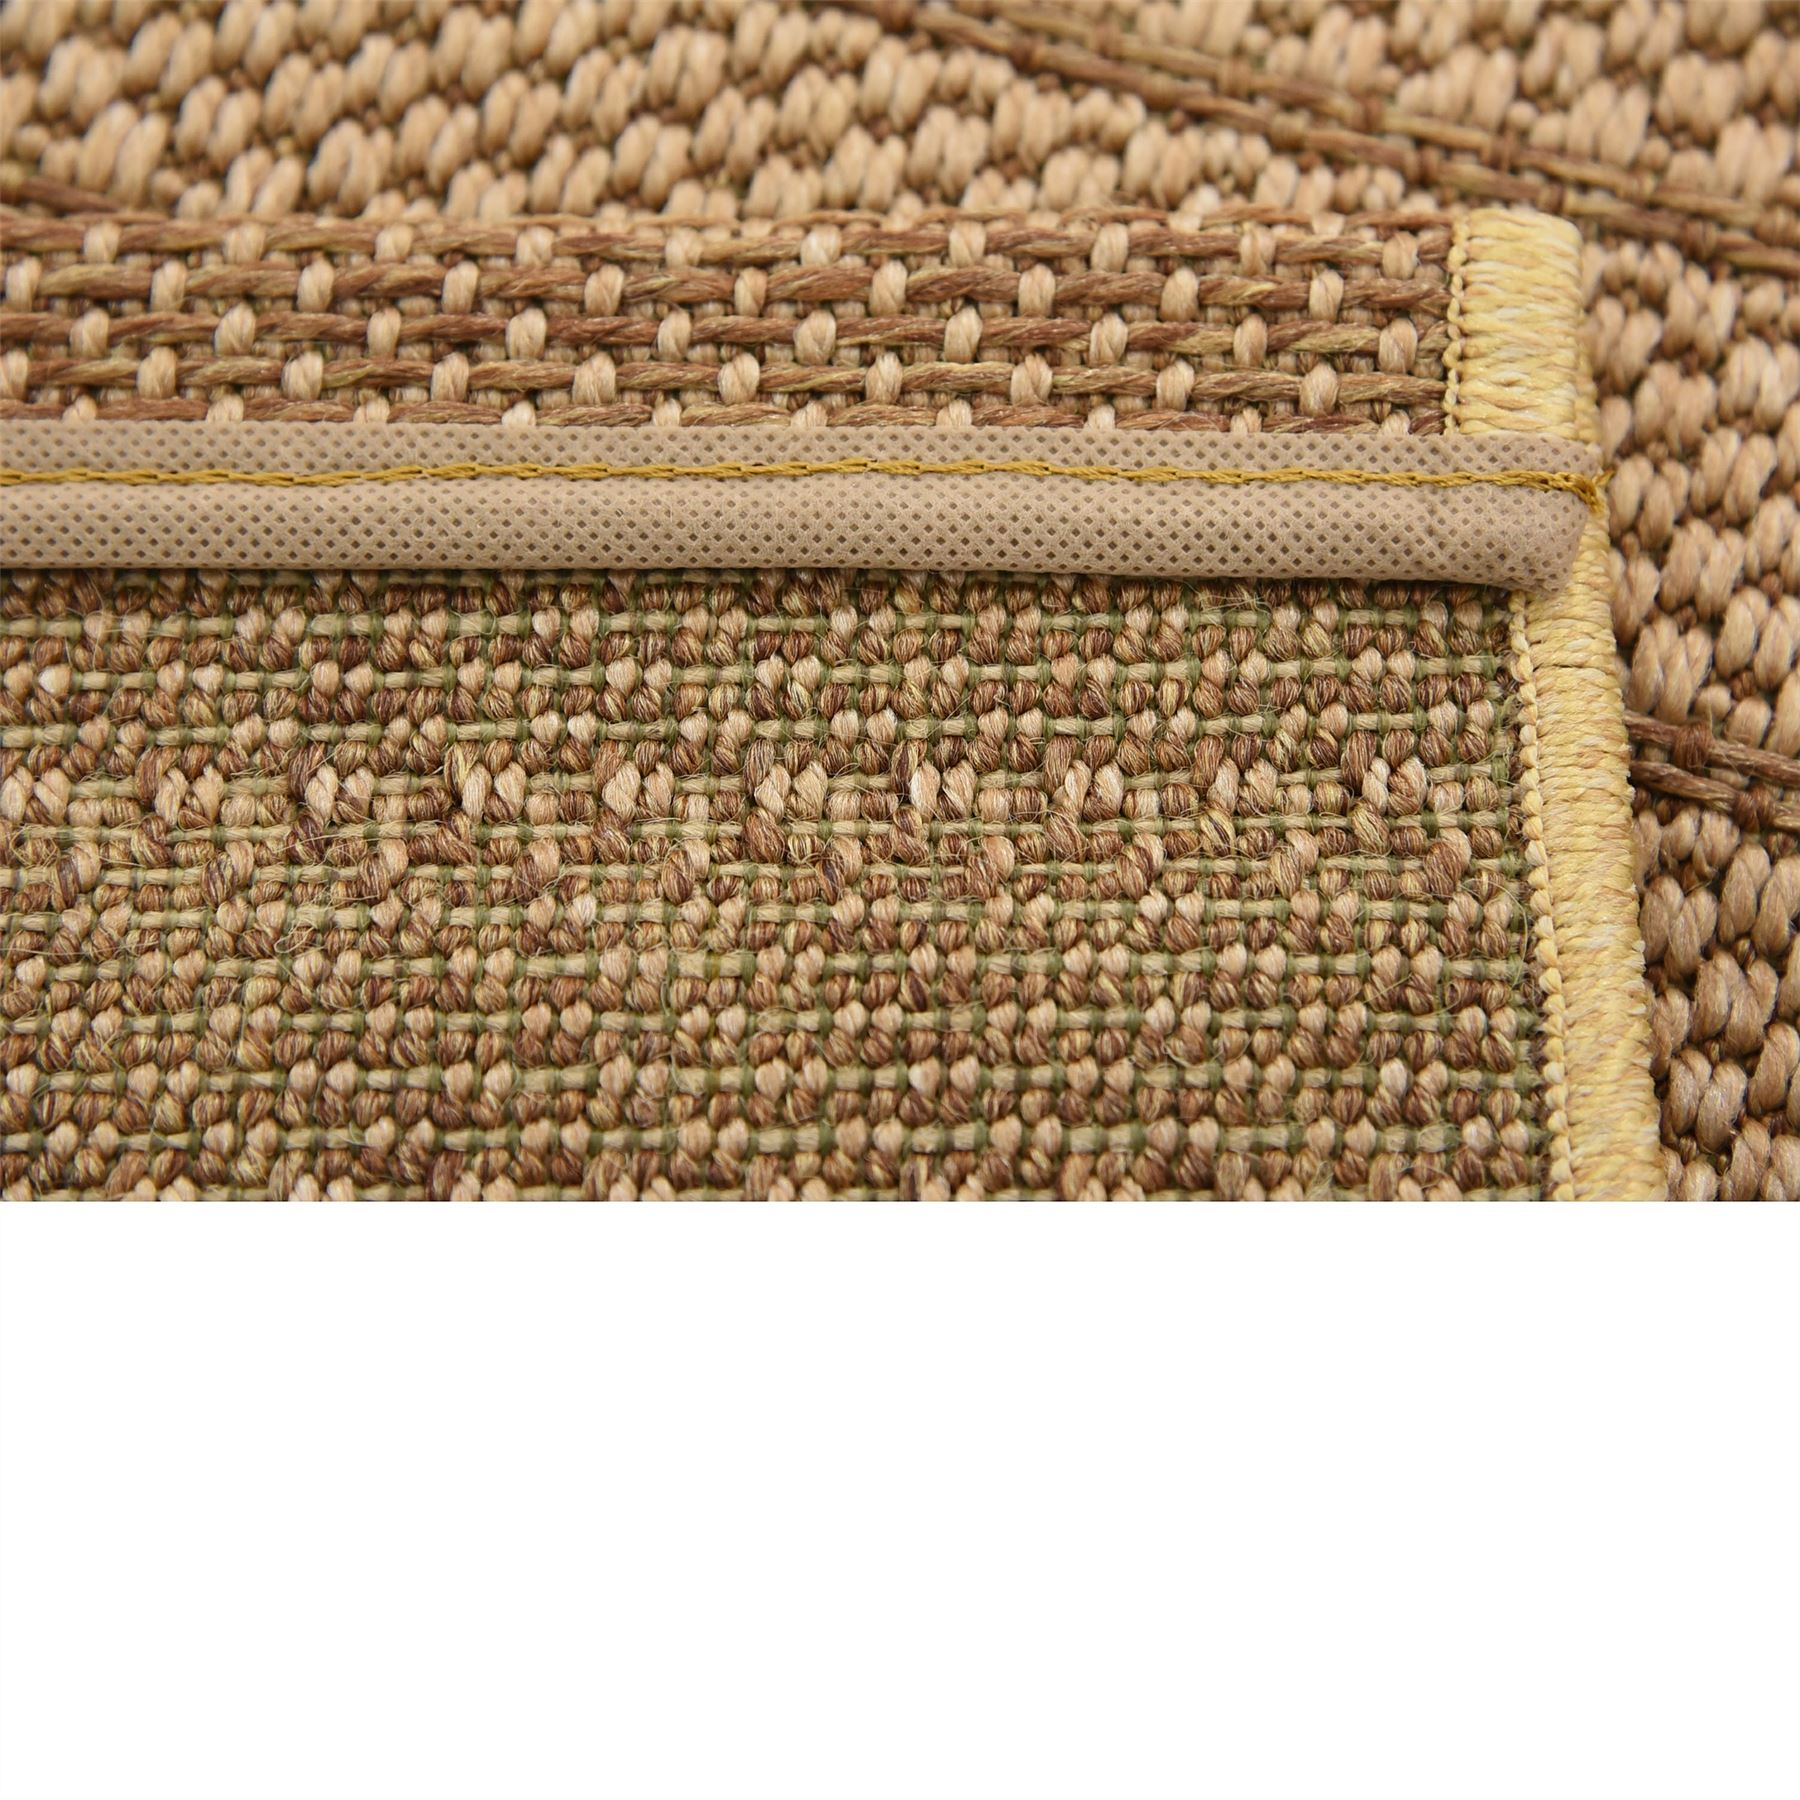 flatweave patio mat area rugs tan 2 39 x 3 39 2 outdoor rug ebay. Black Bedroom Furniture Sets. Home Design Ideas